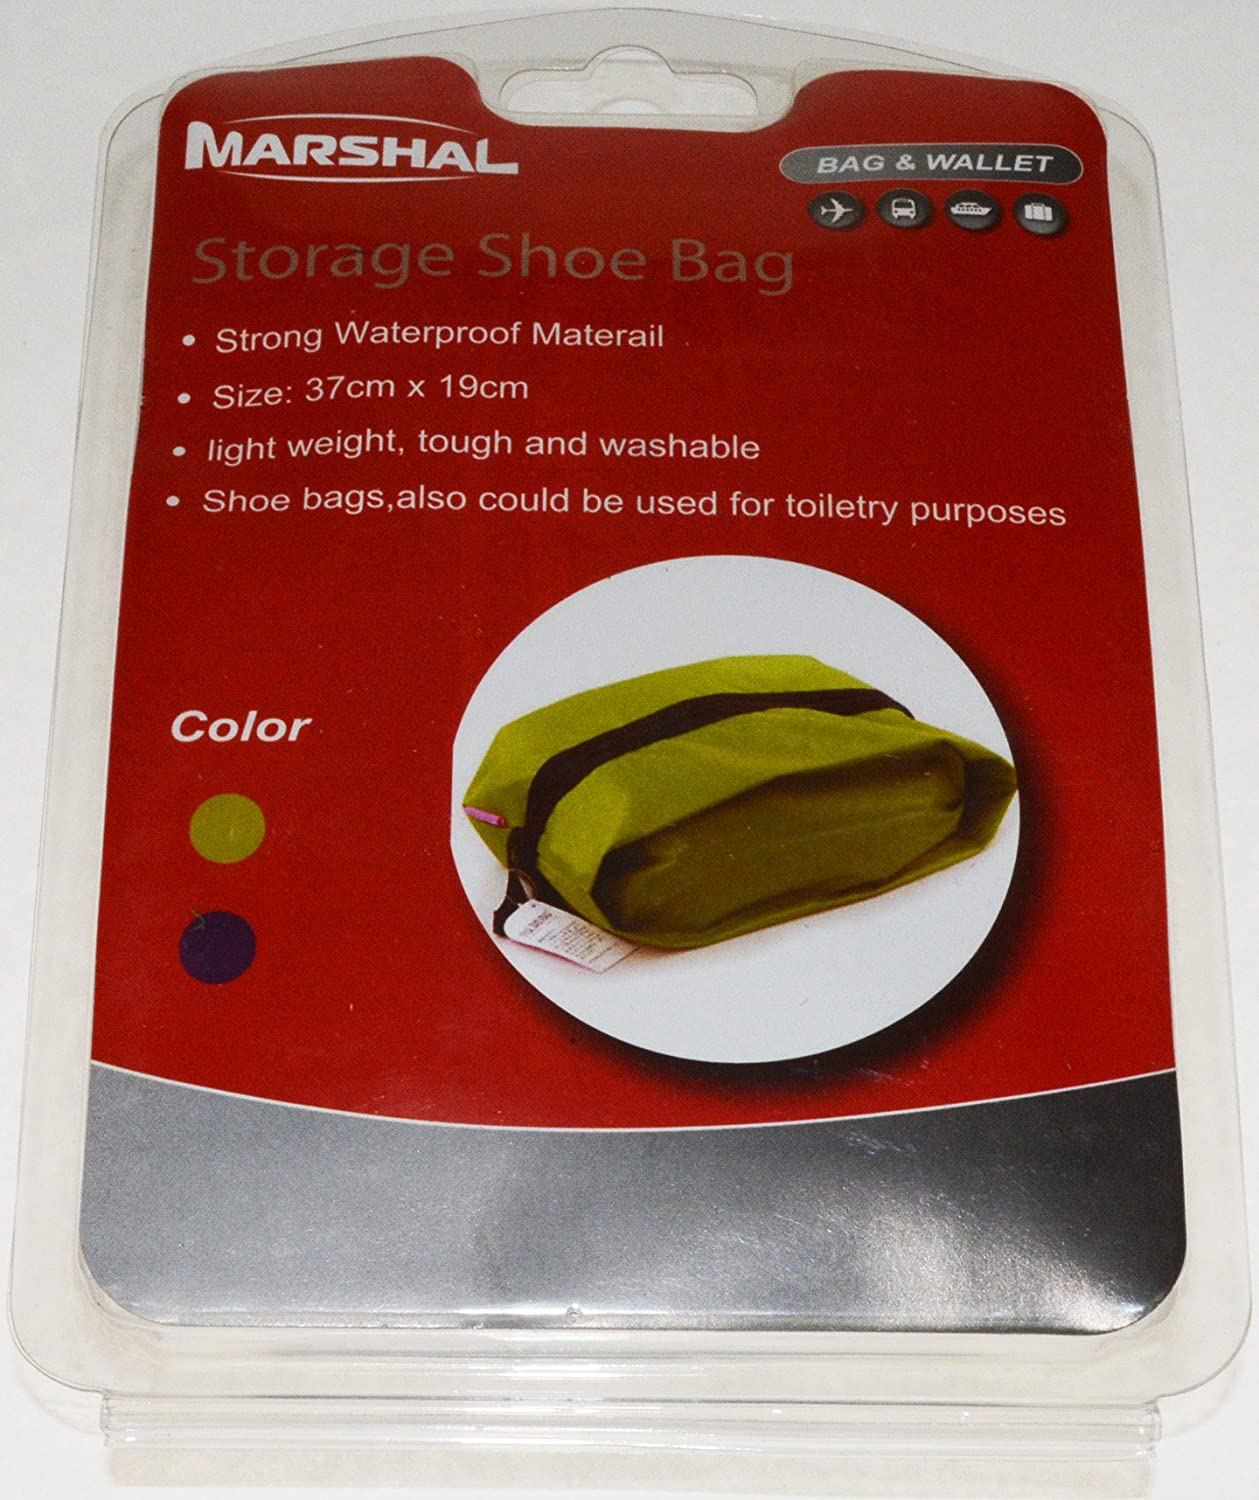 Travel and StorageBag for Shoes or Toiletry Purposes for Travel By Marshal